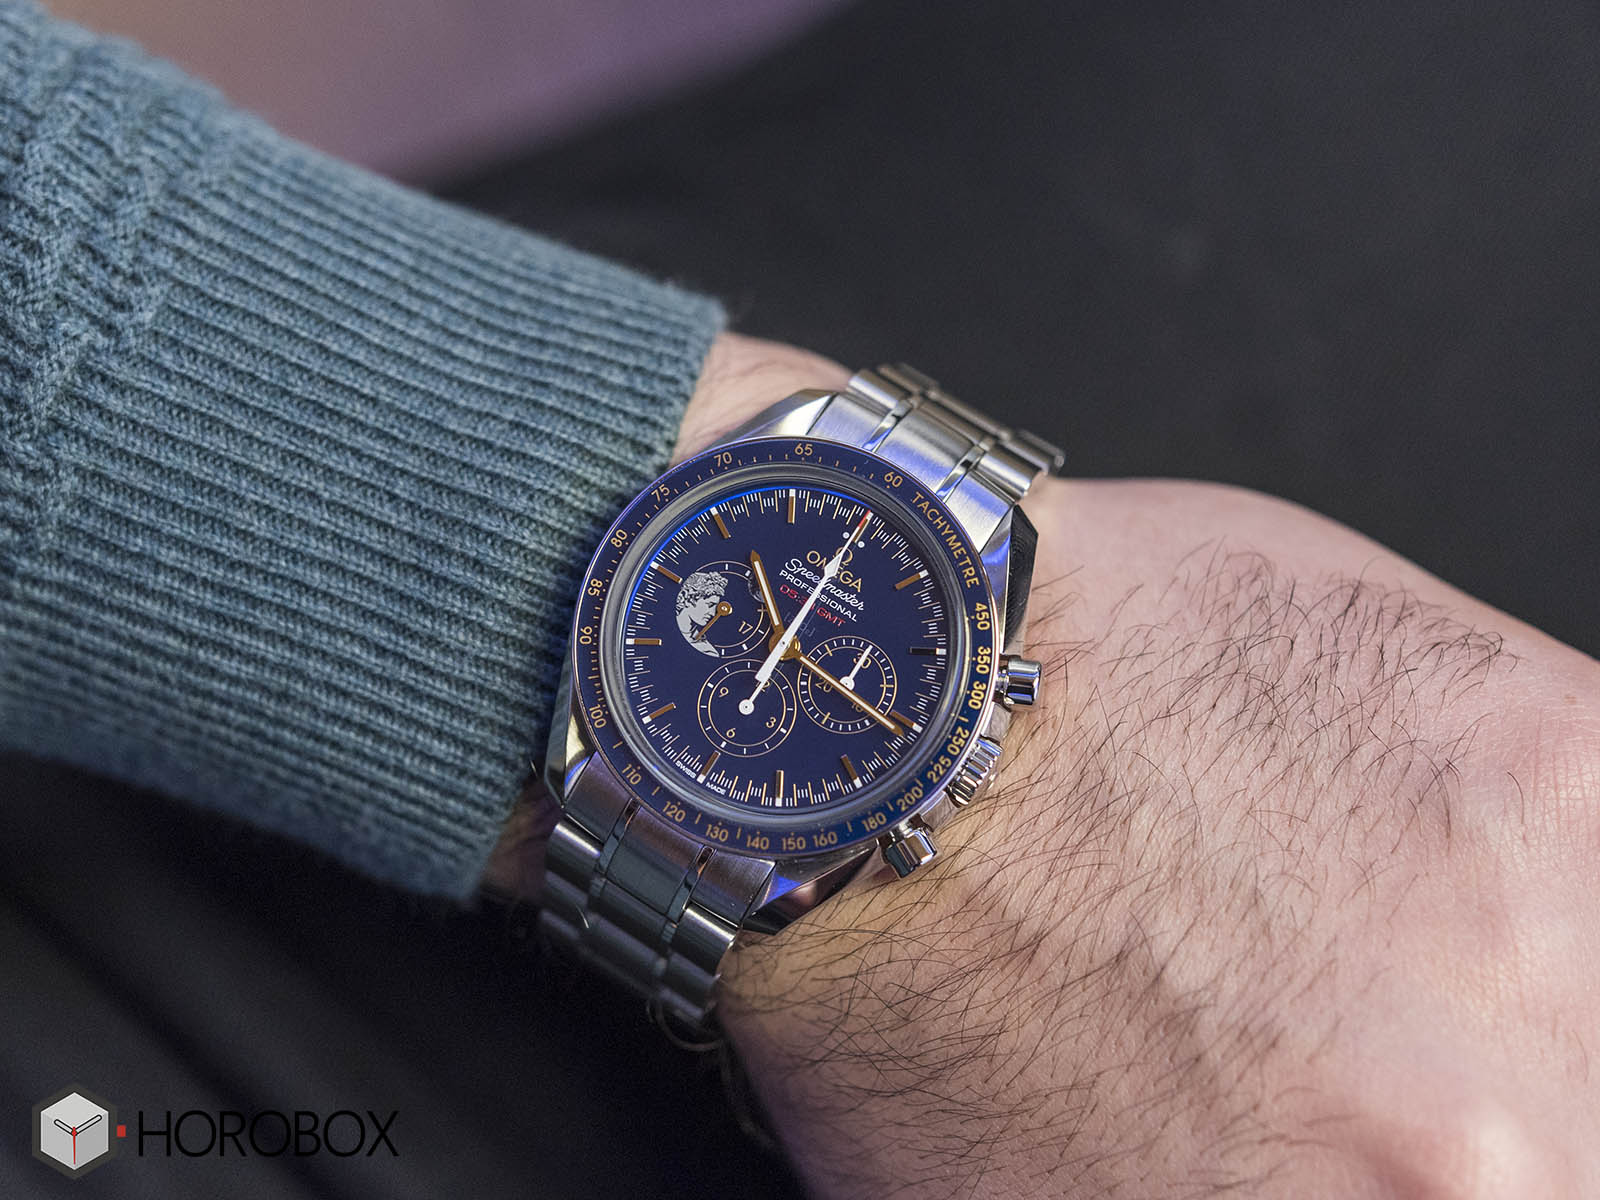 omega-speedmaster-apollo-moonwatch-anniversary-311-30-42-30-03-001-11-.jpg